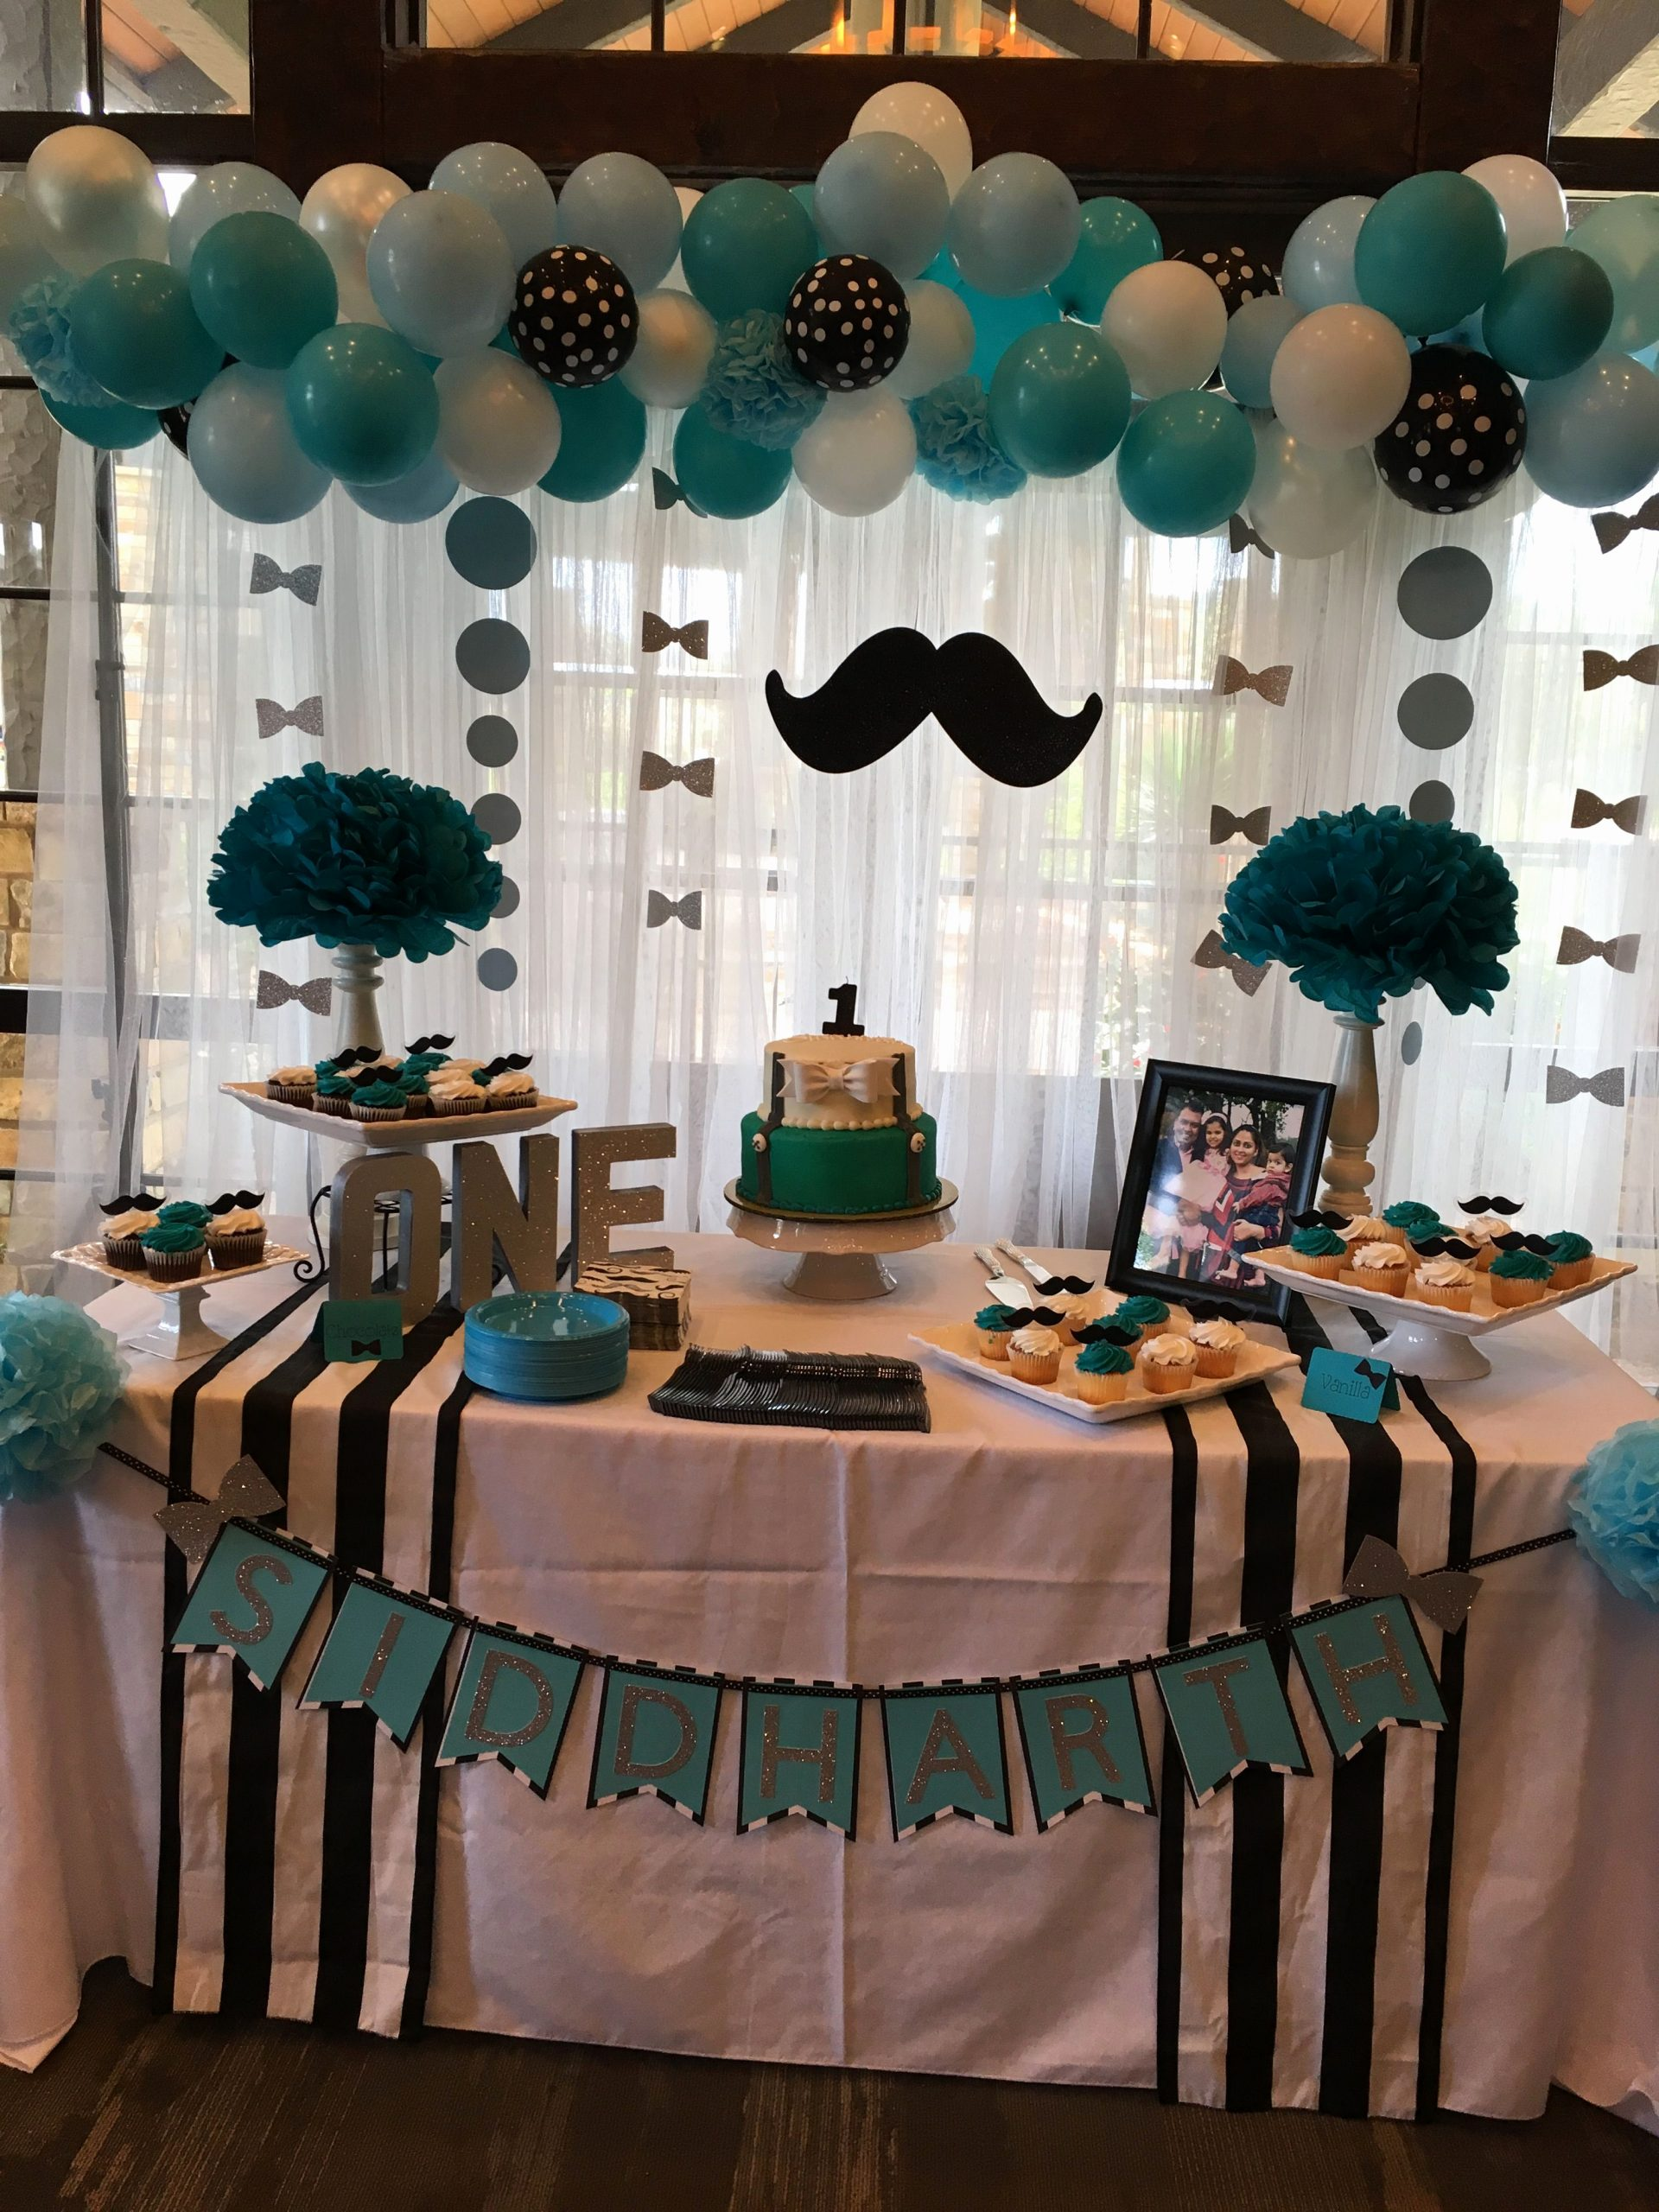 Birthday Decoration Ideas for Table Luxury Little Man First Birthday Cake Table